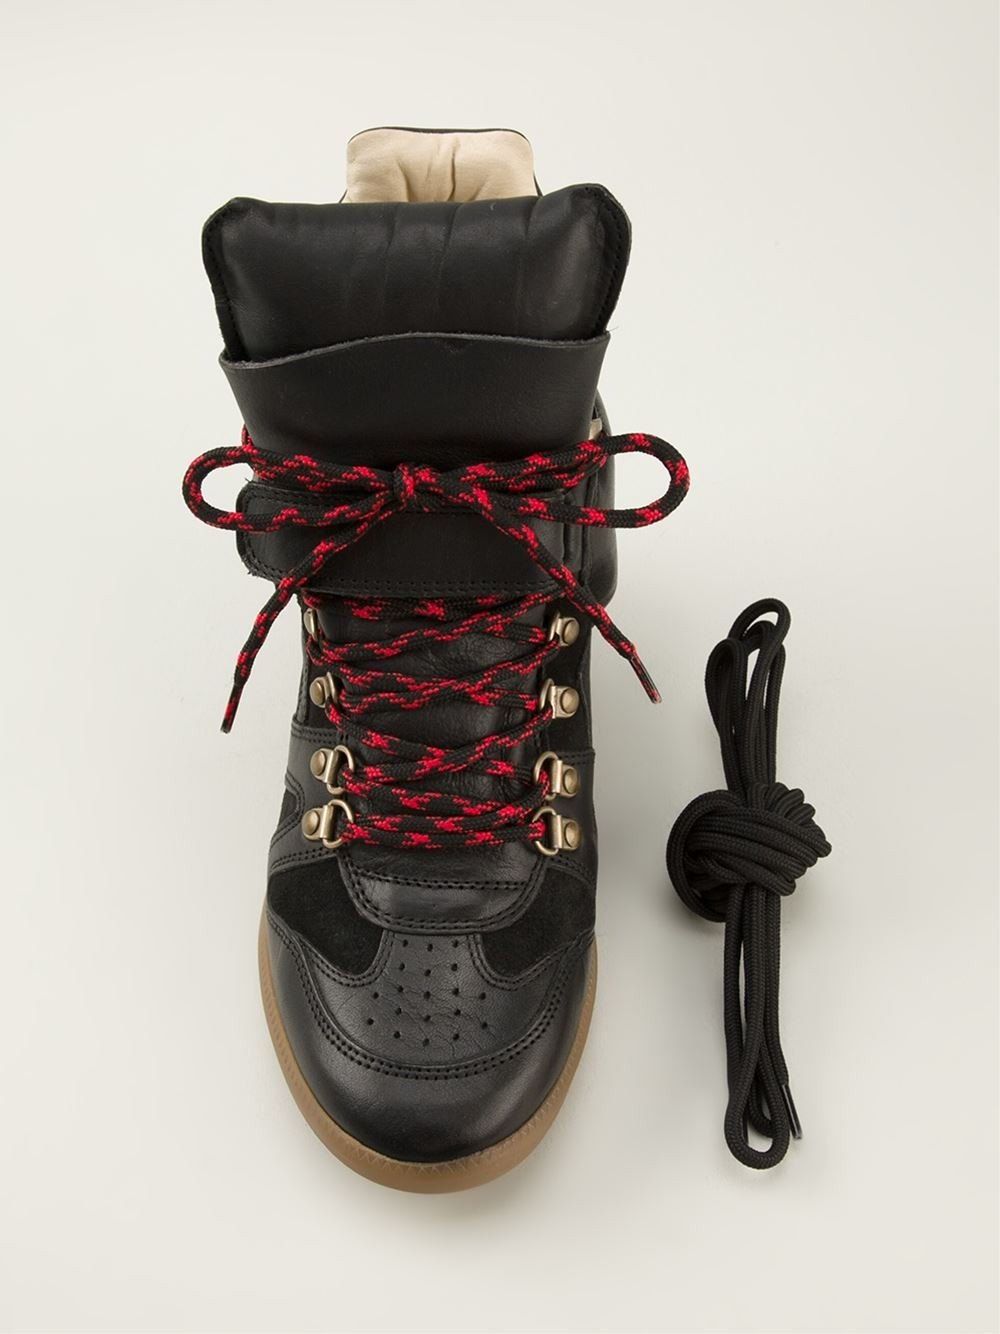 Isabel Marant Buck Hi-Top Black Women's Wedge Sneakers